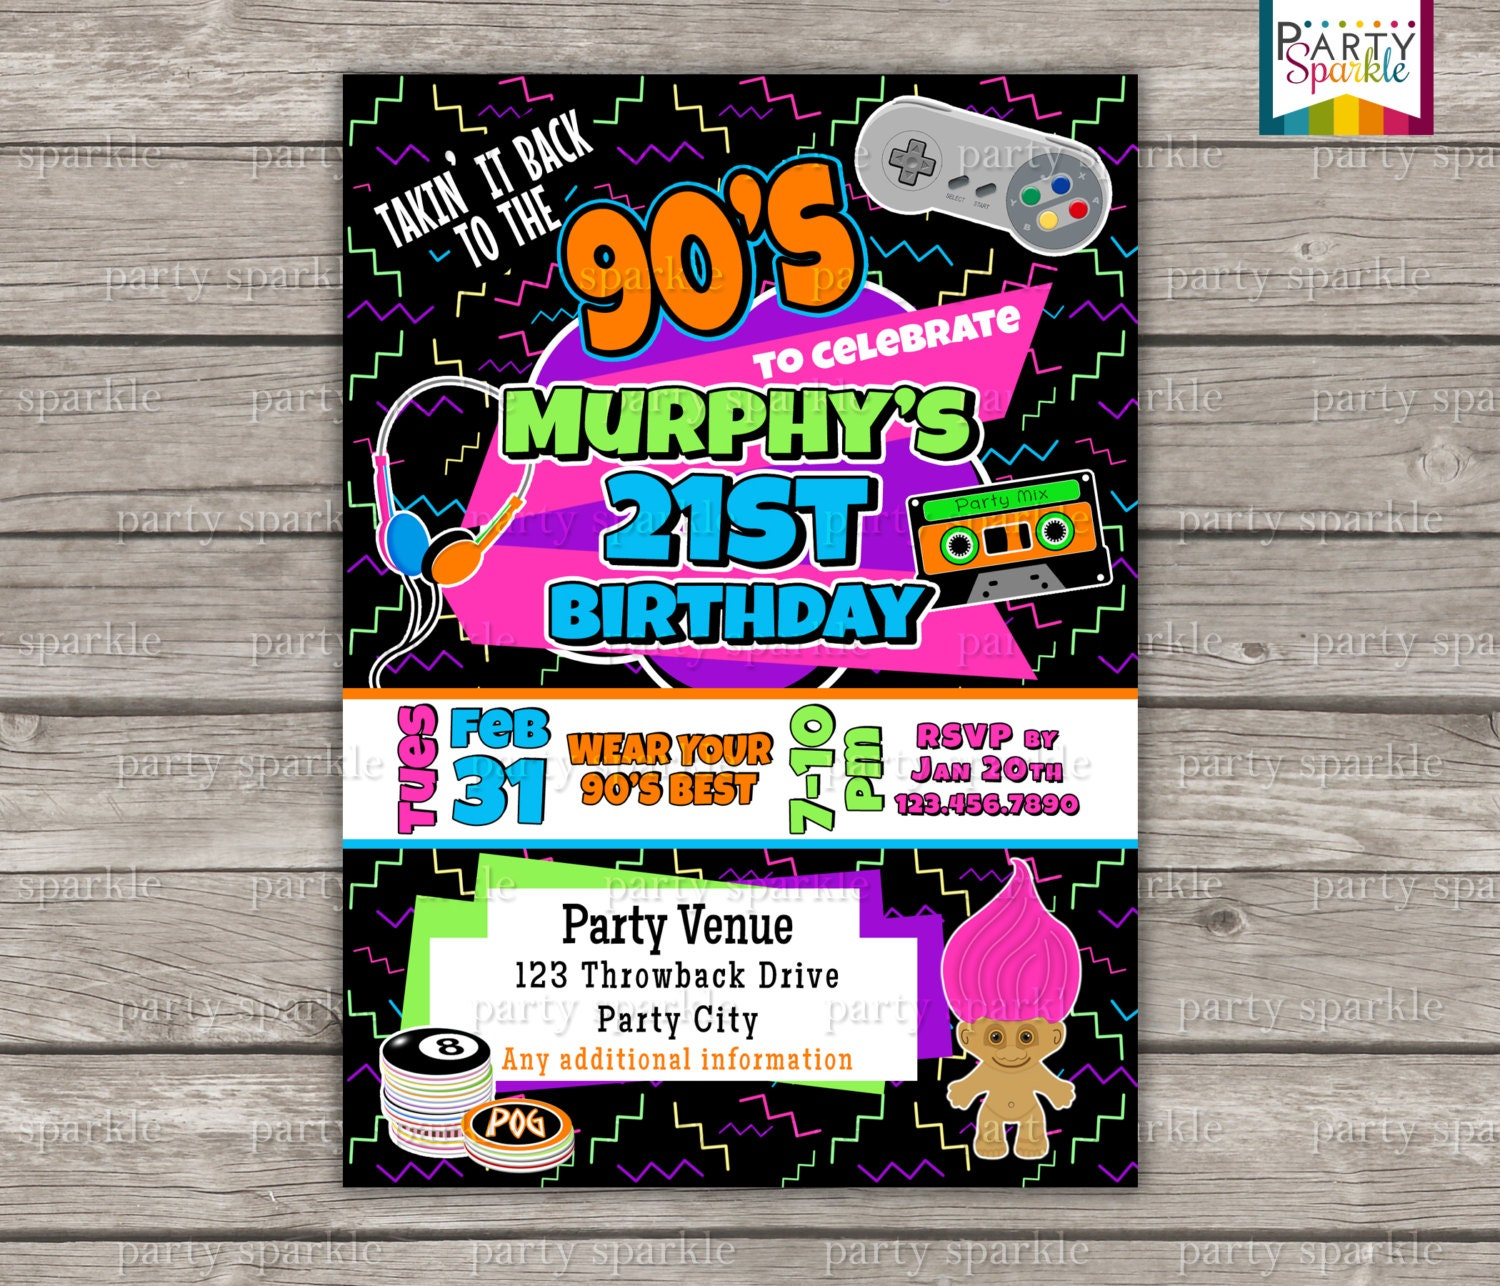 Takin It Back To The S Retro Birthday Invite Personalized - Retro birthday invitation template